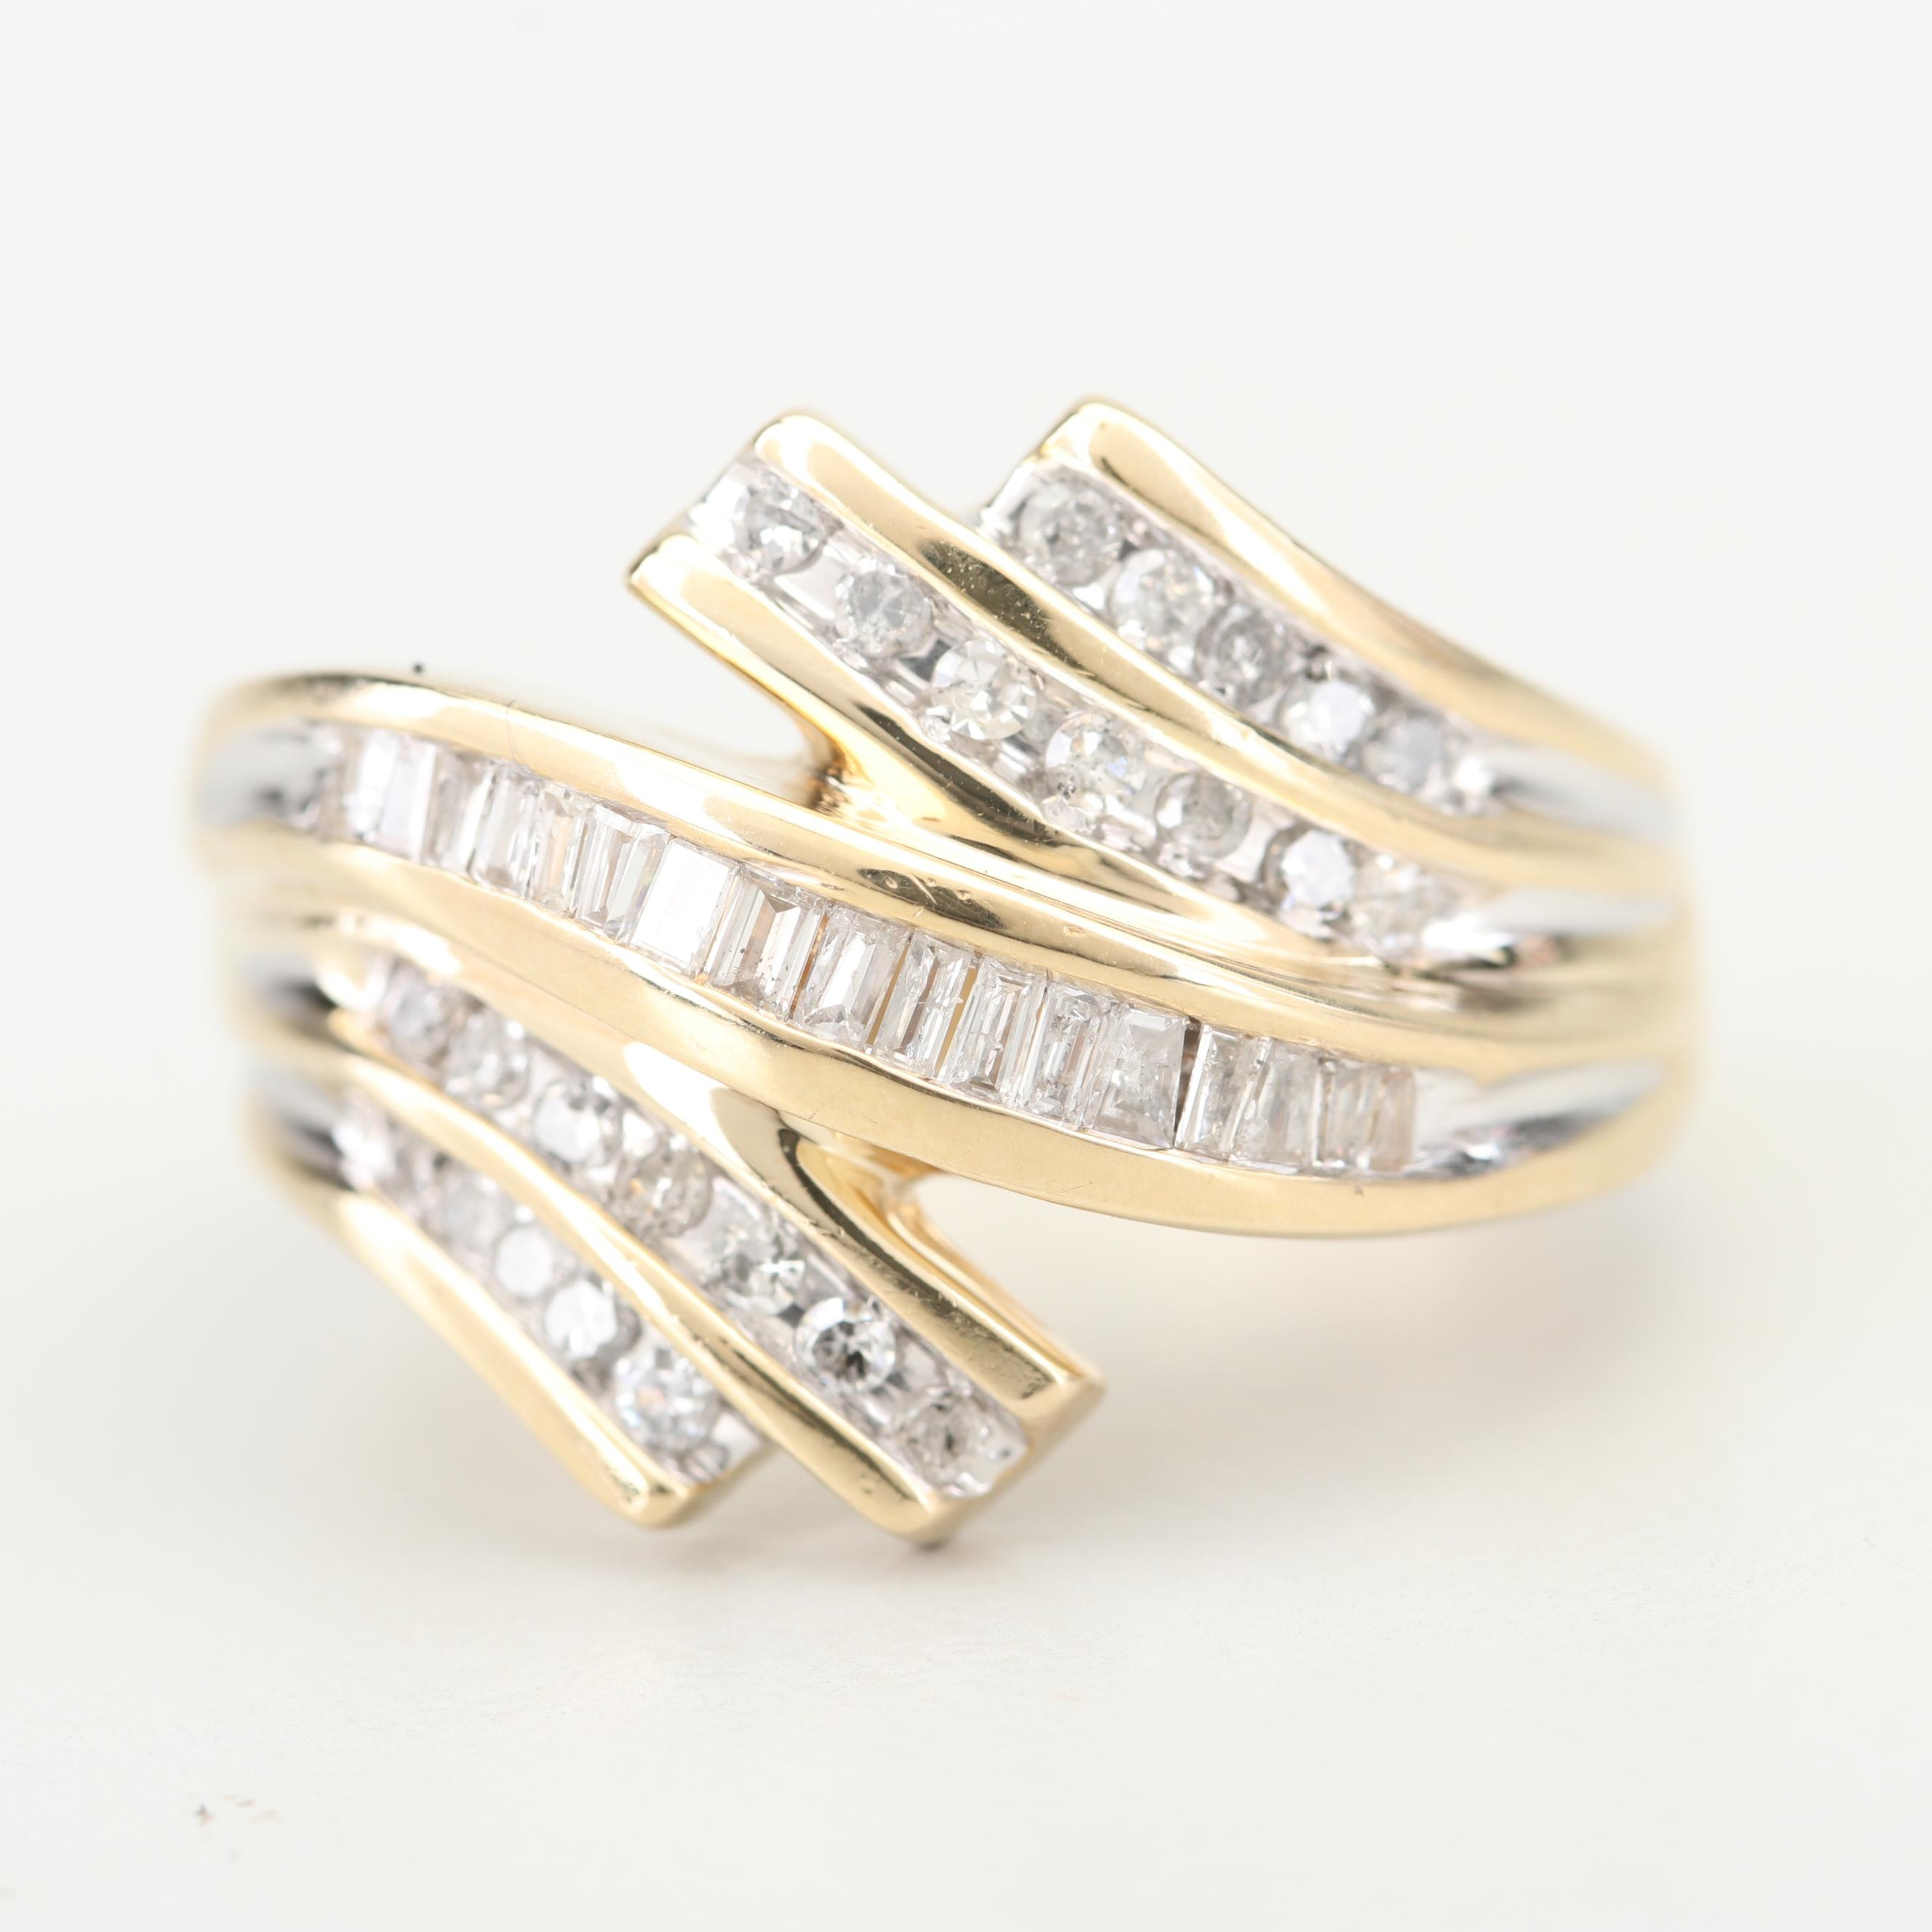 10K Yellow Gold and Diamond Bypass Ring